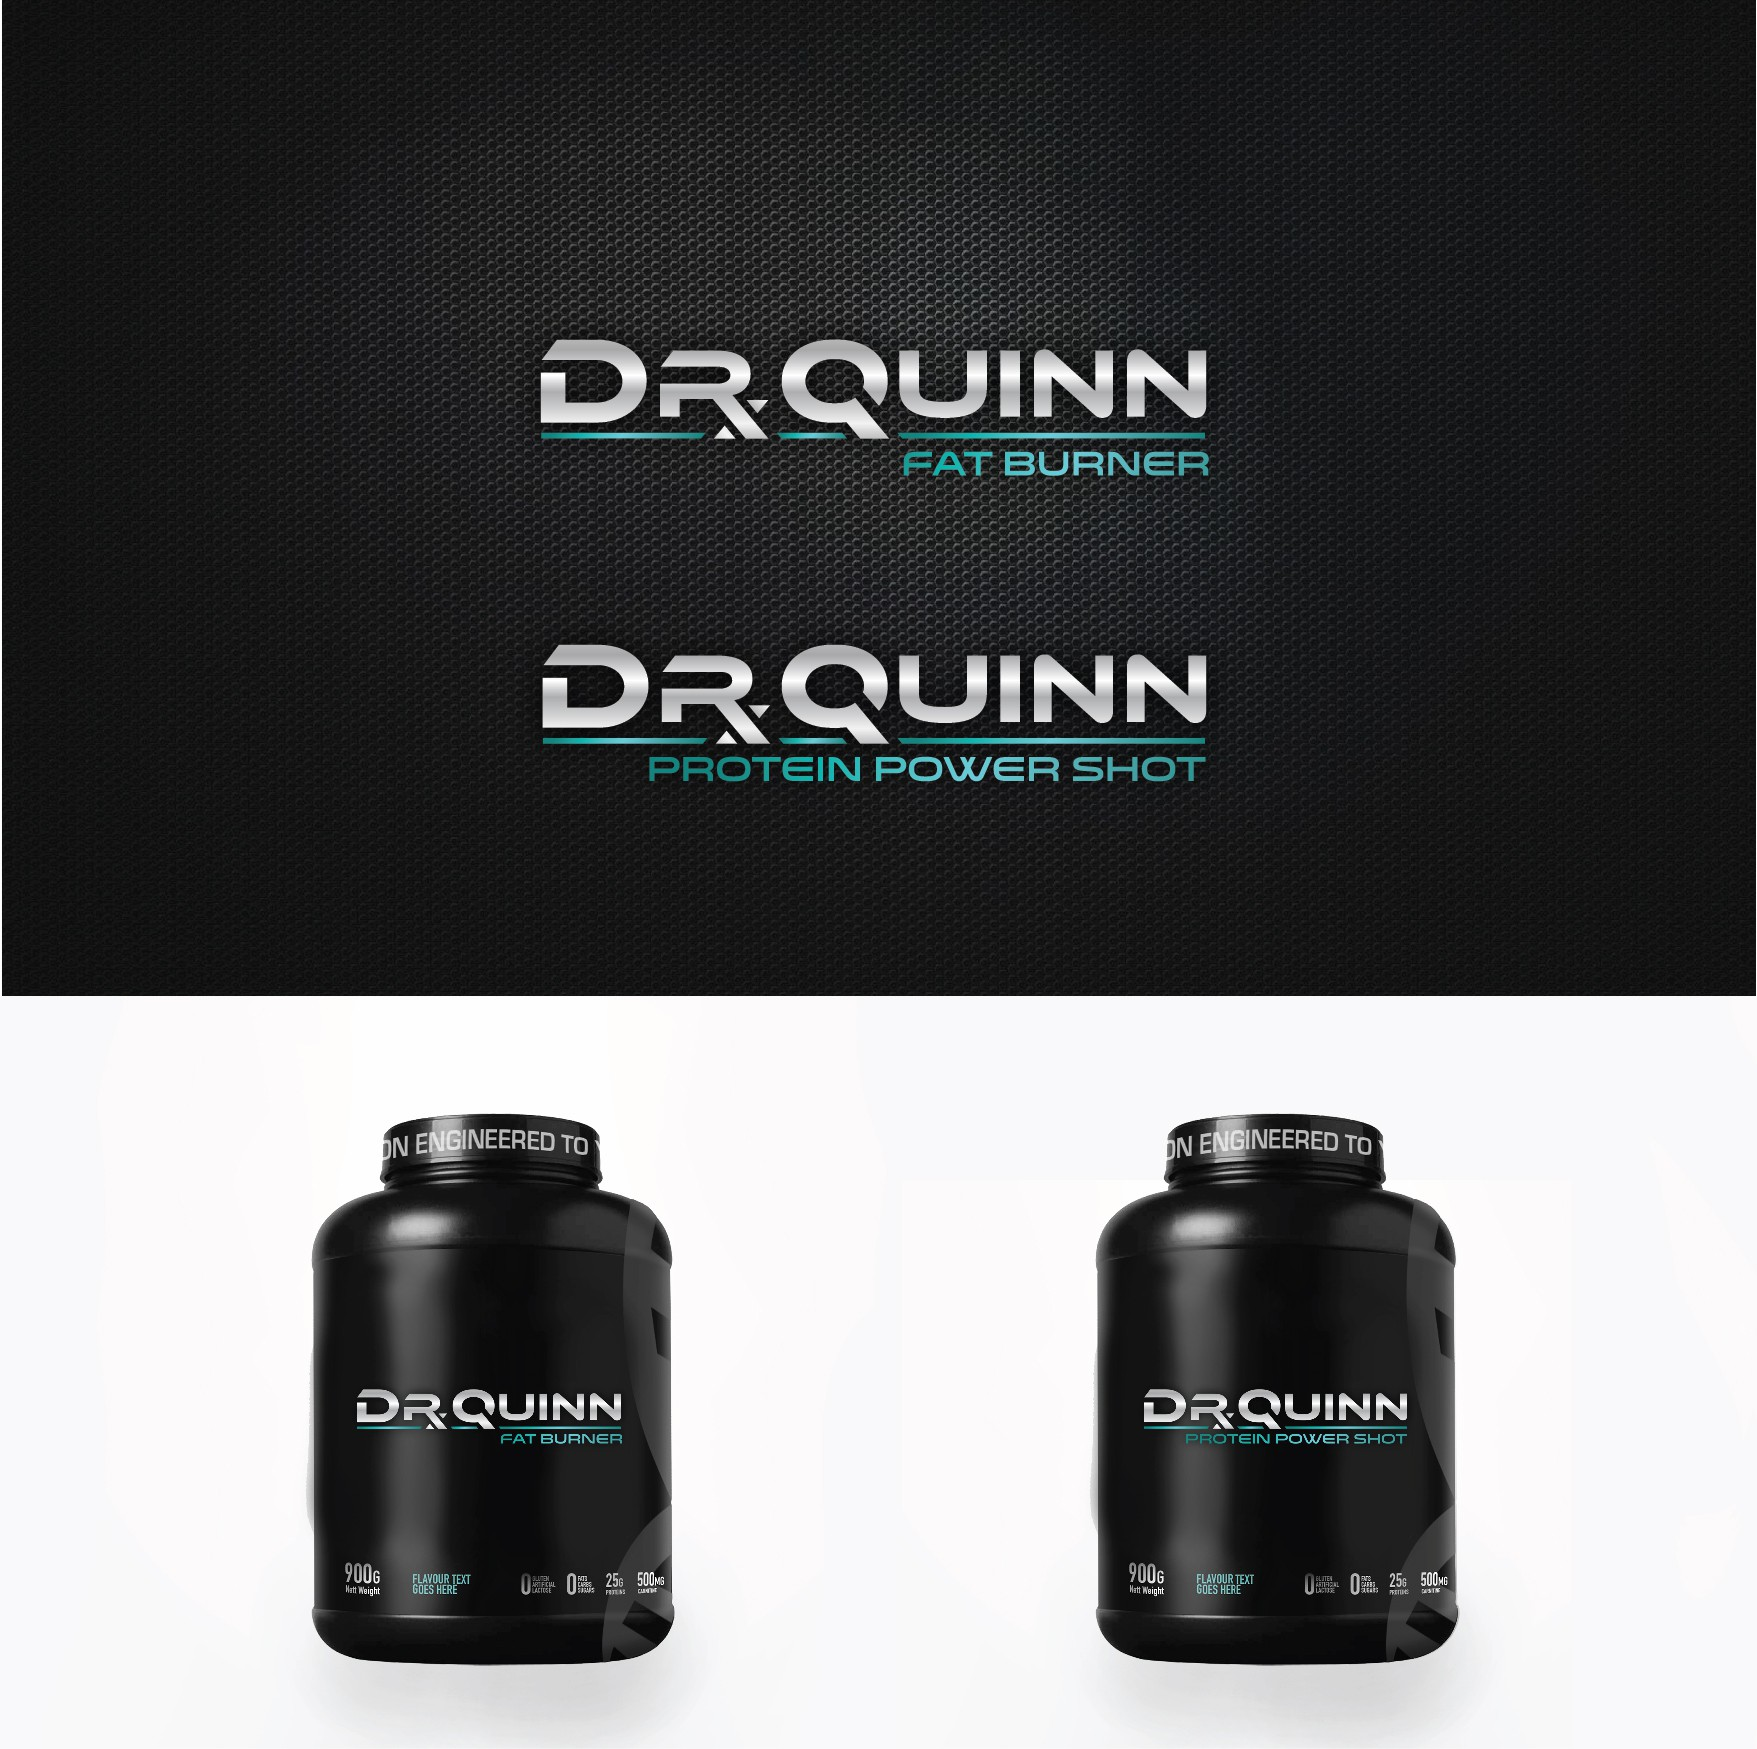 Create a logo for a luxury line of fitness supplements- physician designed.